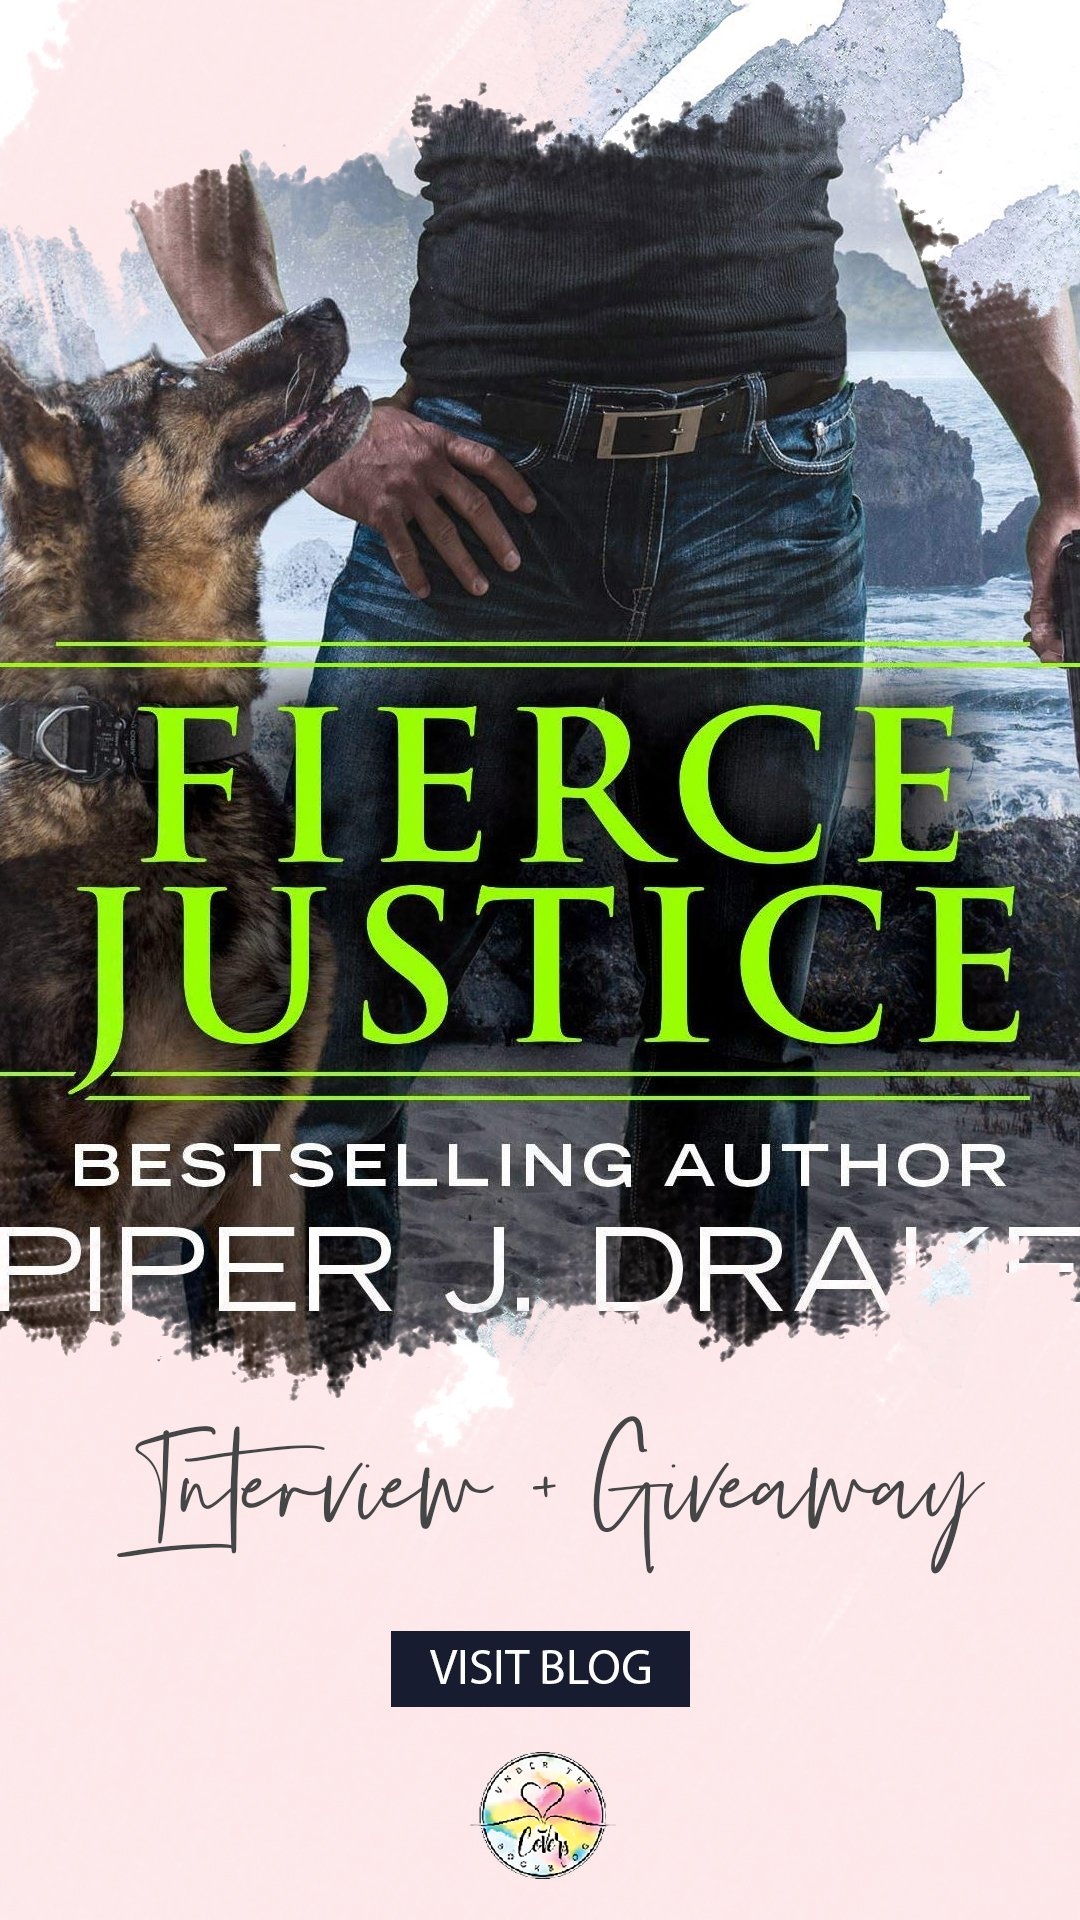 Interview and Giveaway with Piper J. Drake